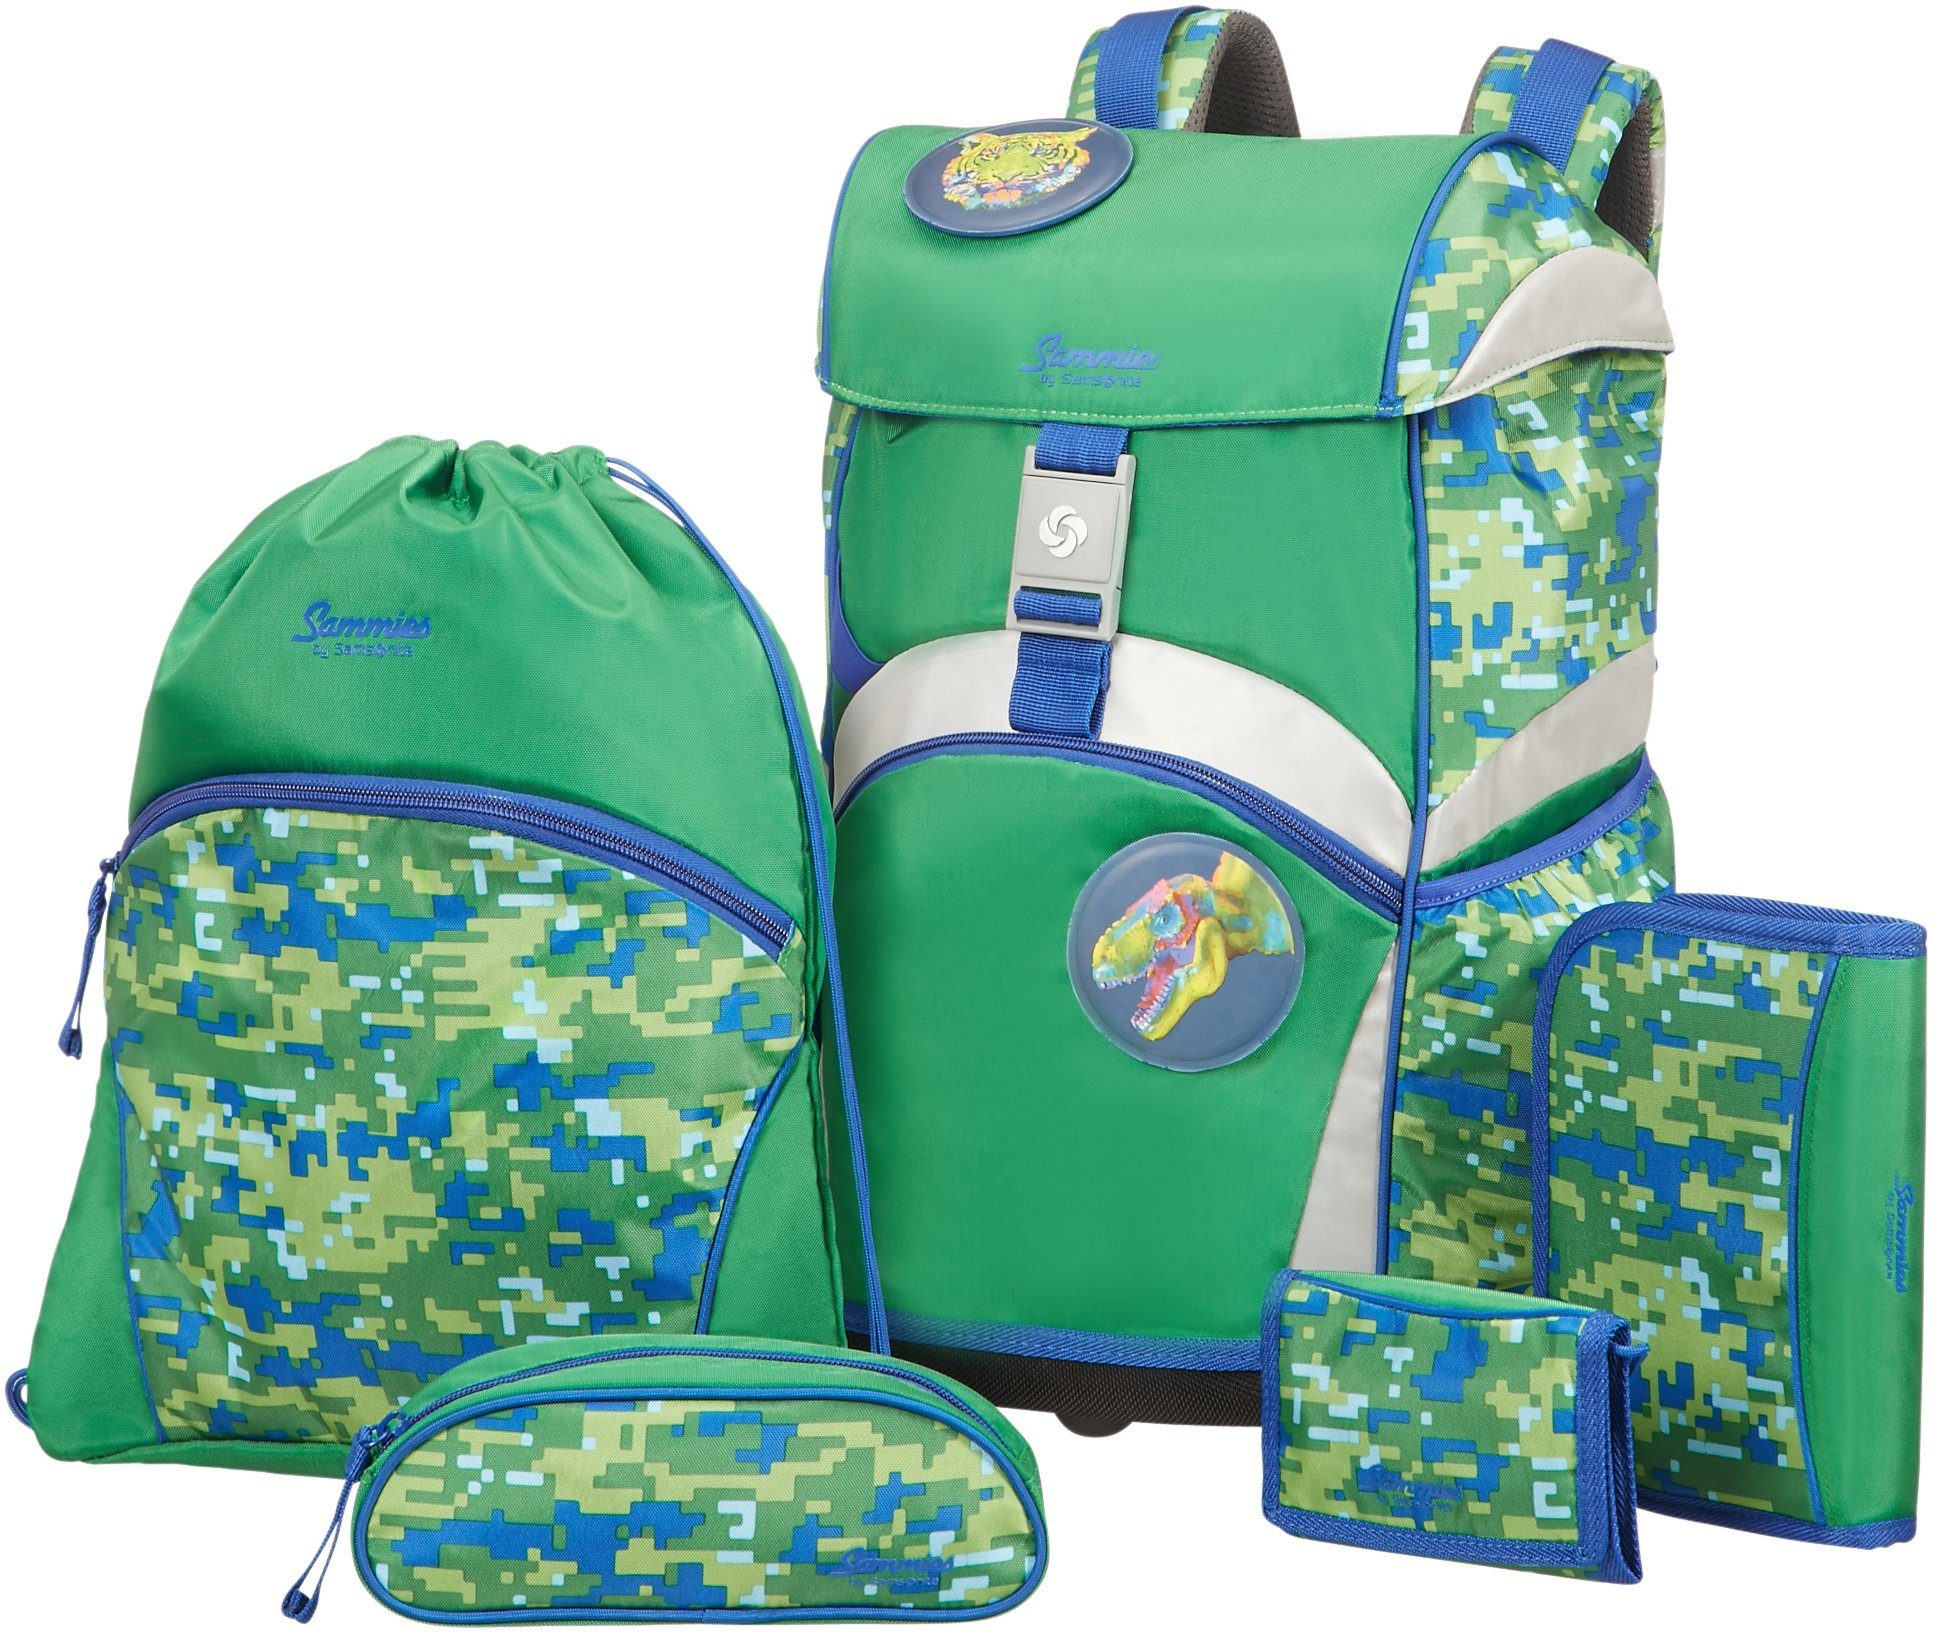 Samsonite Schulranzen Set, »Sammies by Samsonite Jungle Adventure« (5tlg.)